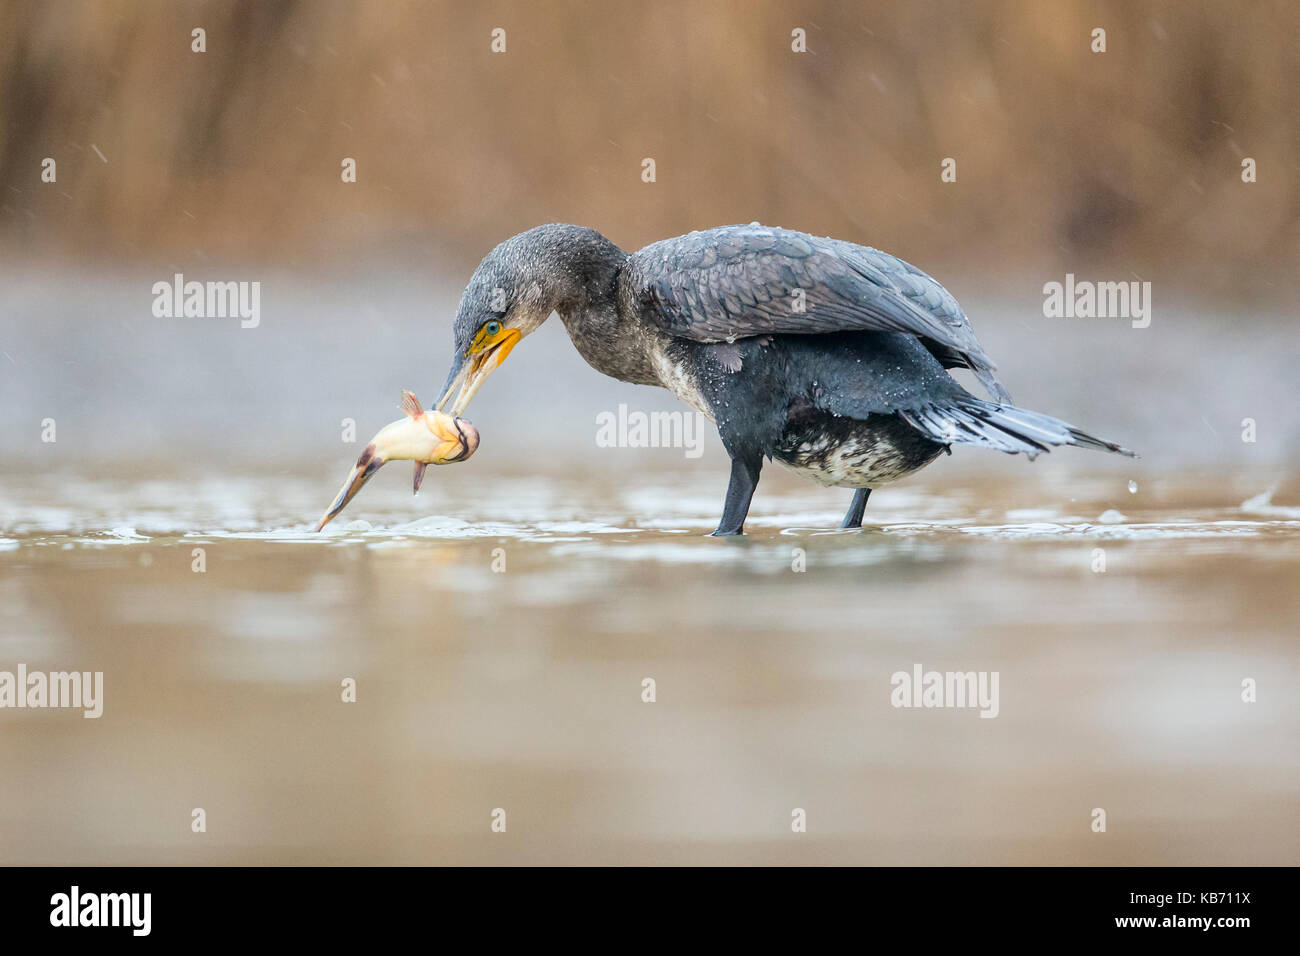 Great Cormorant (Phalacrocorax carbo) catching a fish, Hungary, Bacs-Kiskun, Kiskunsagi National Park - Stock Image